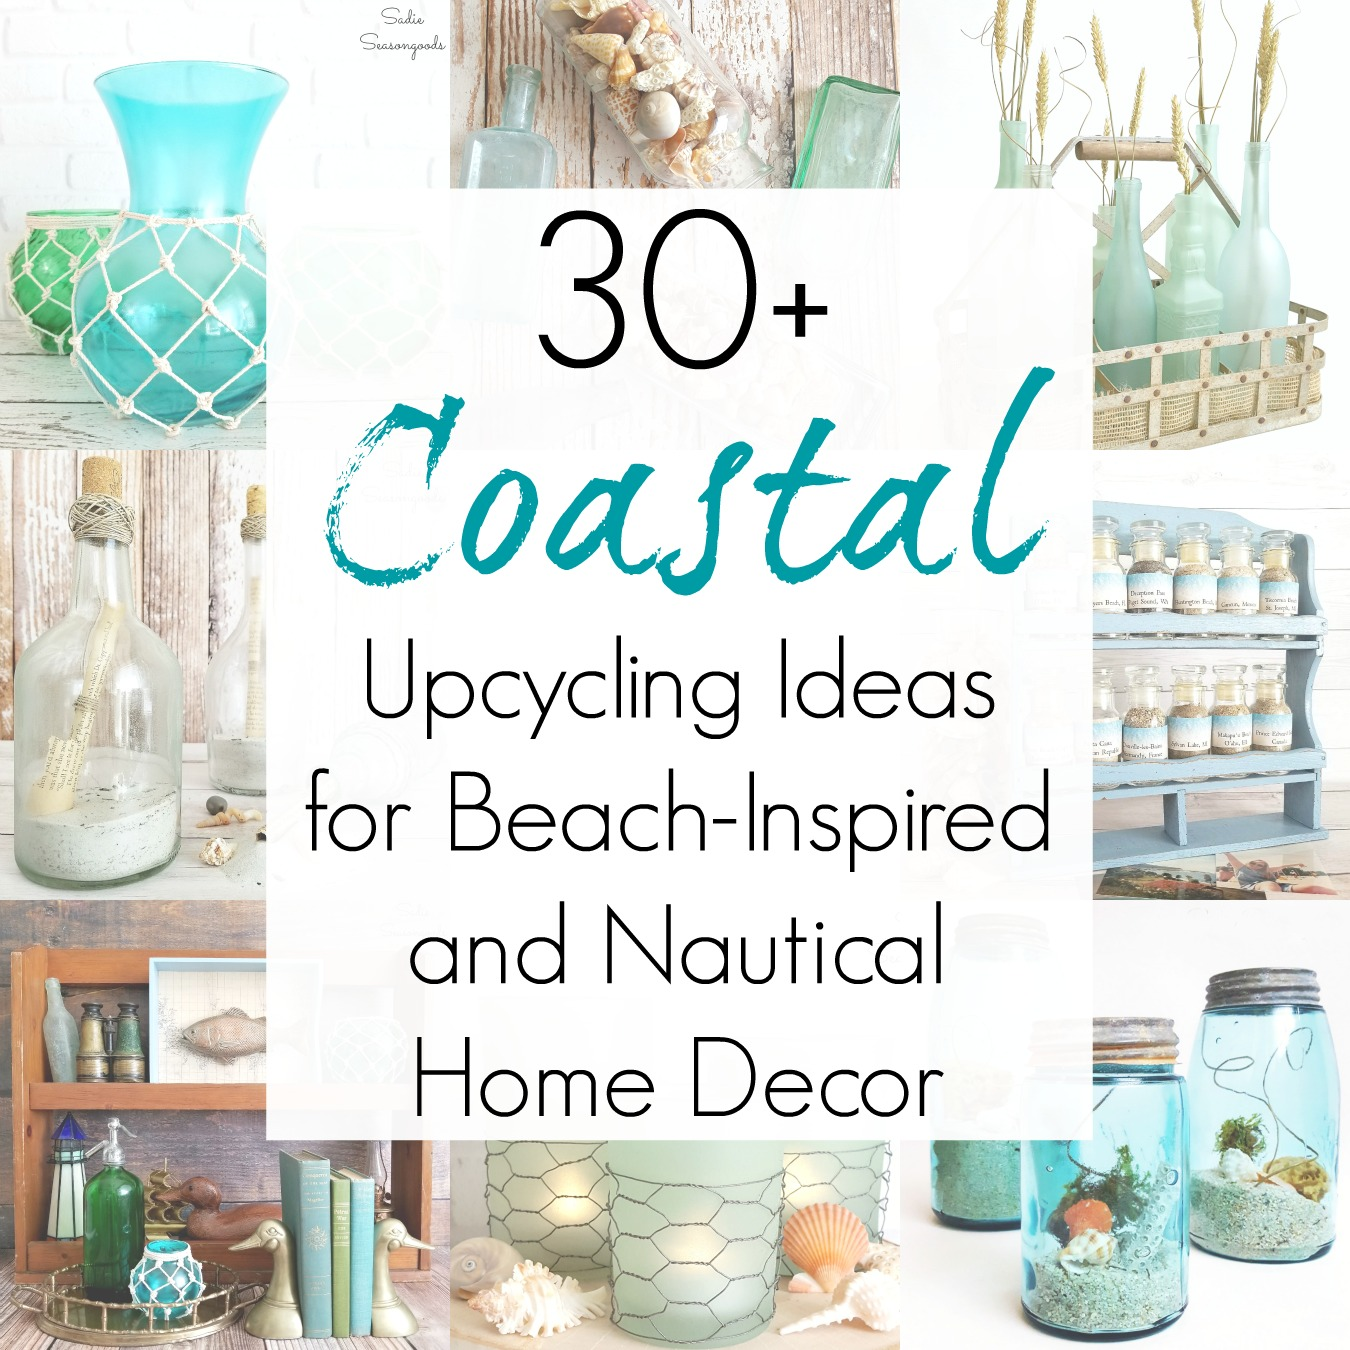 Upcycling Ideas Beach home decor, coastal interiors, and nautical decor ideas as compiled by Sadie Seasongoods